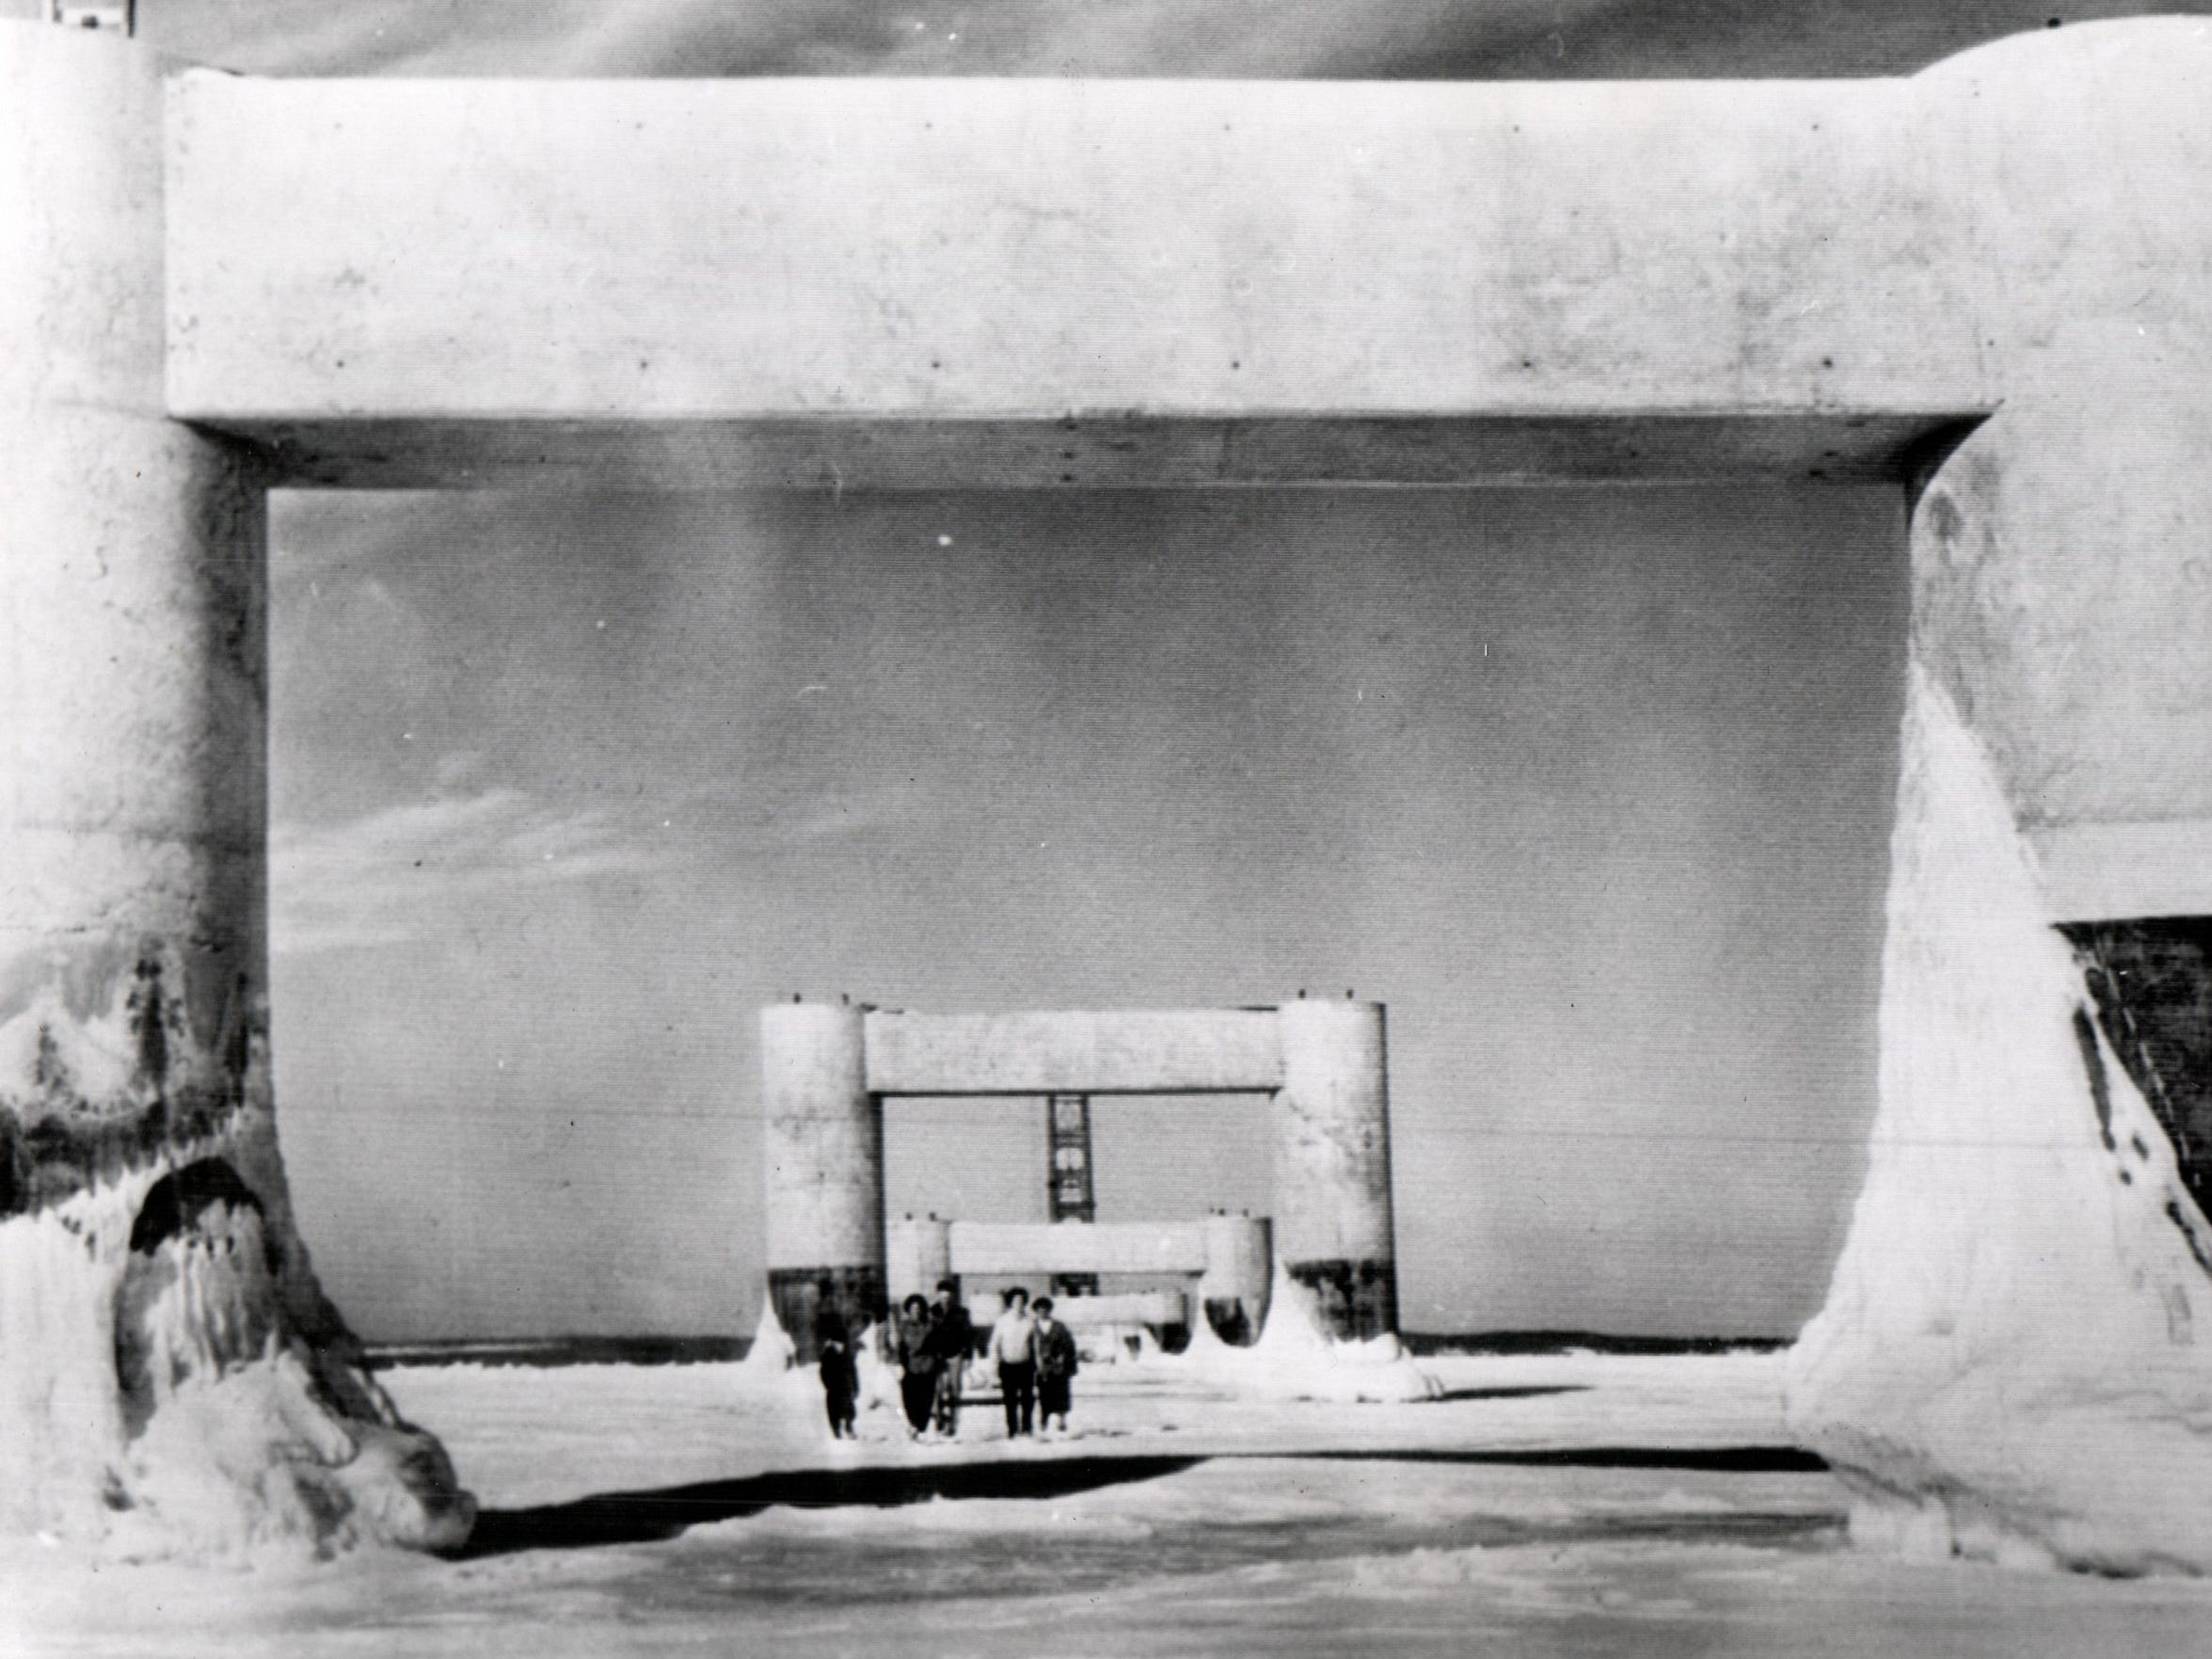 Mackinaw City - Feb. 15, 1956. Photo shows one of the big arches of the bridge, its bases sheathed in ice, forms a frame for the five Mackinaw City residents who are returning to shore from a close-up inspection of the span.